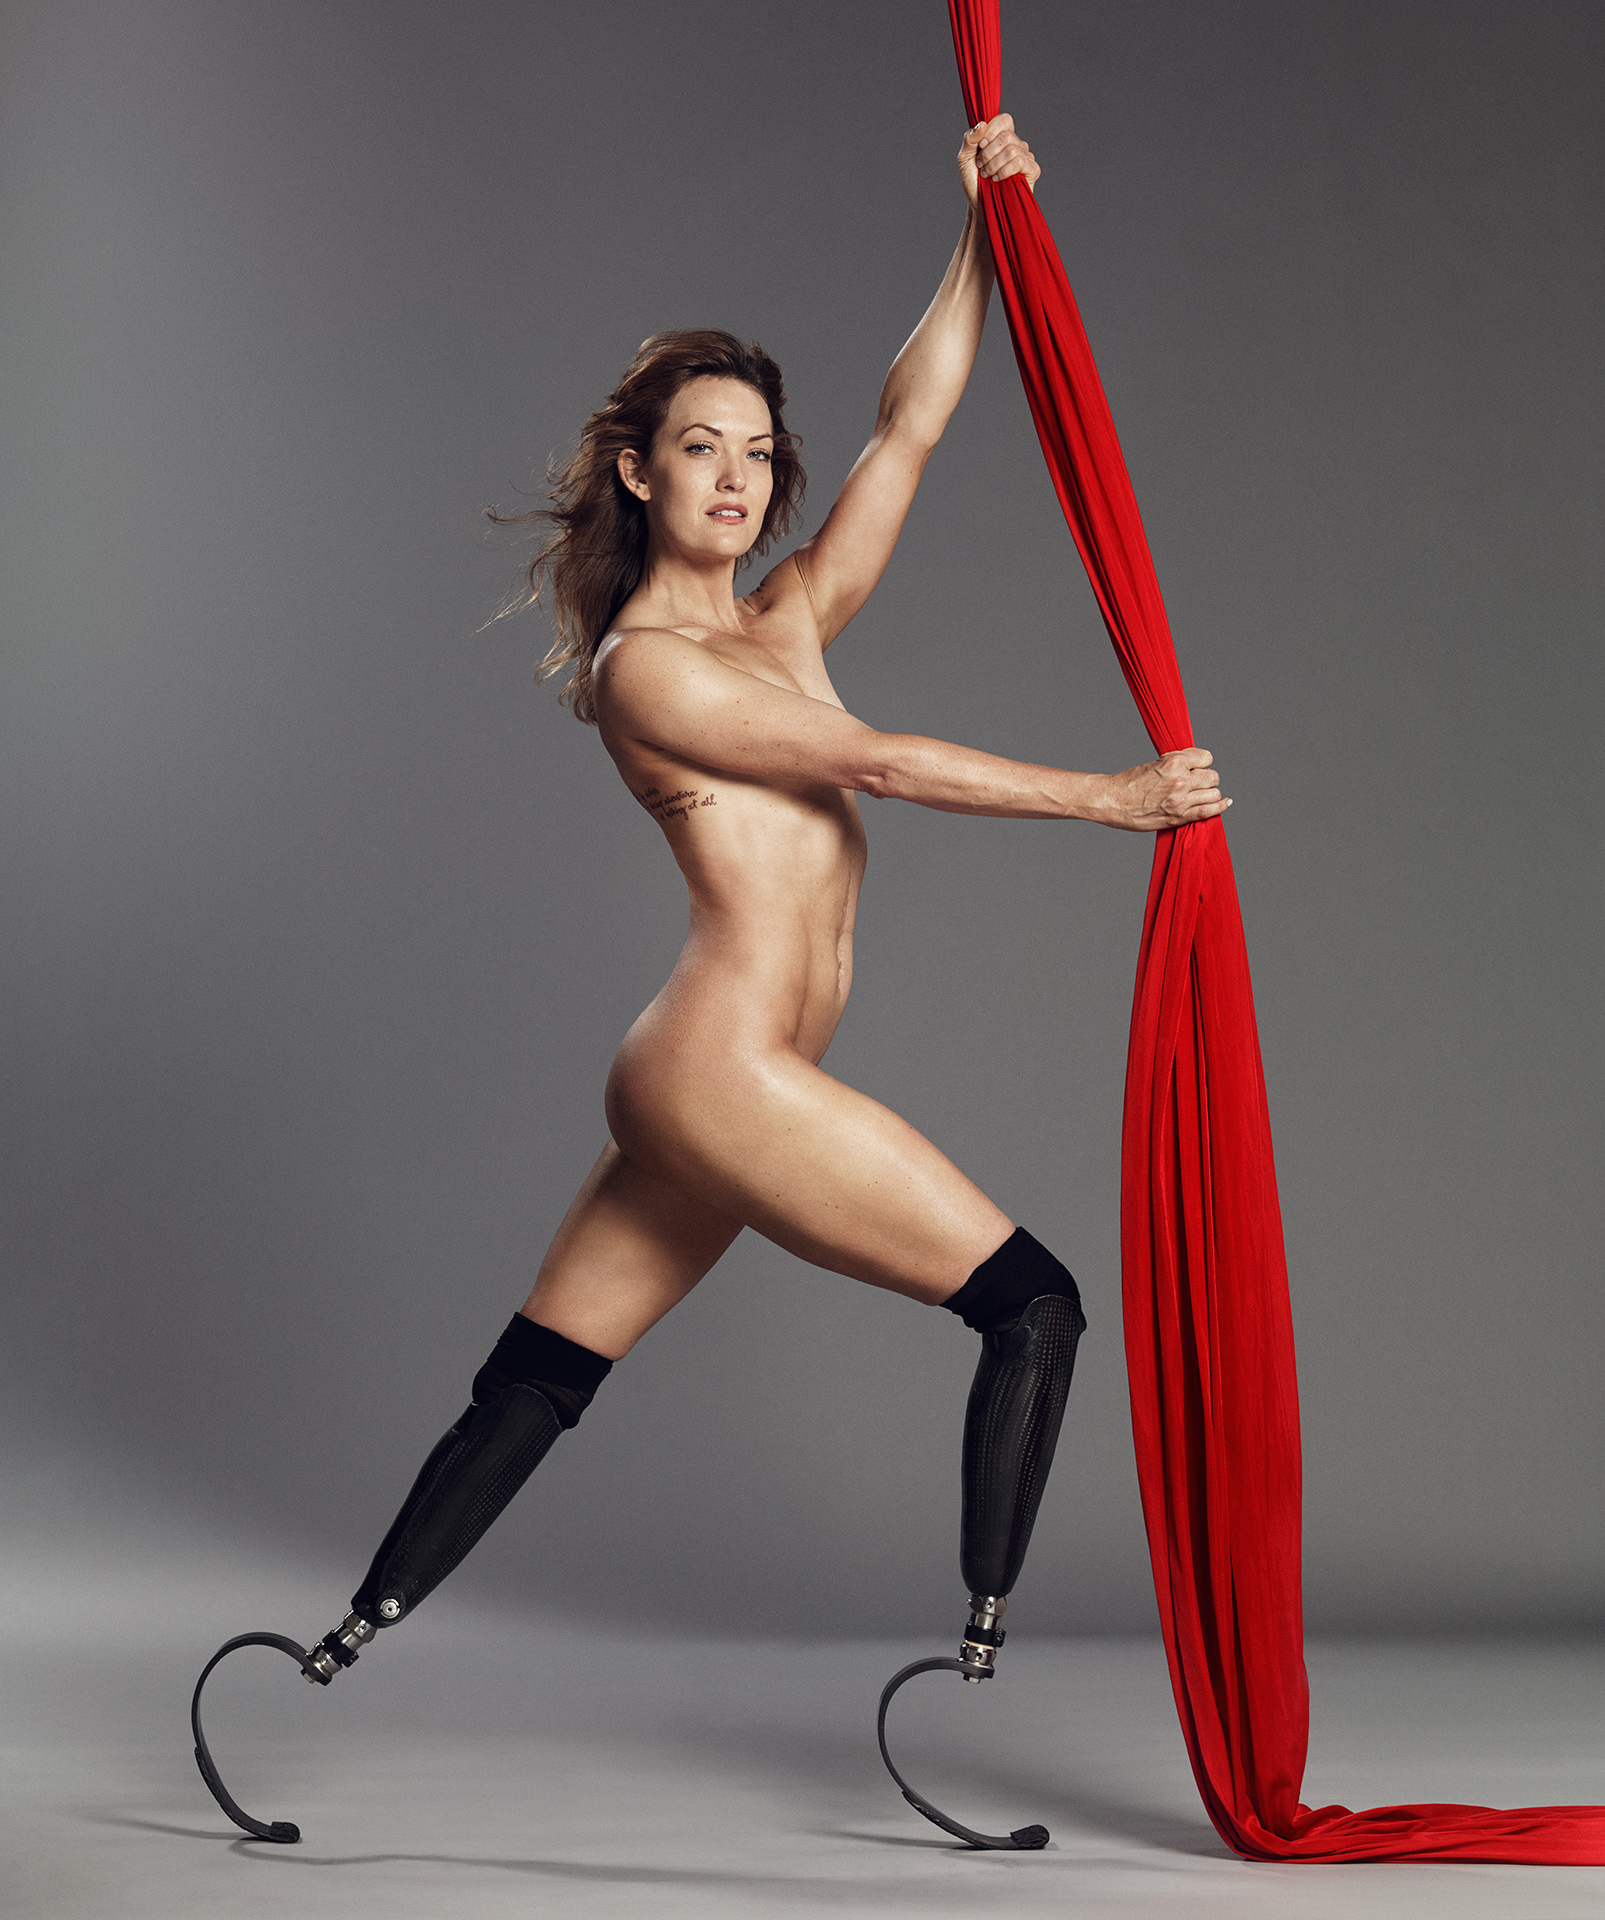 Amy Purdy, Amy Purdy Nude, Amy Purdy The Body Issue